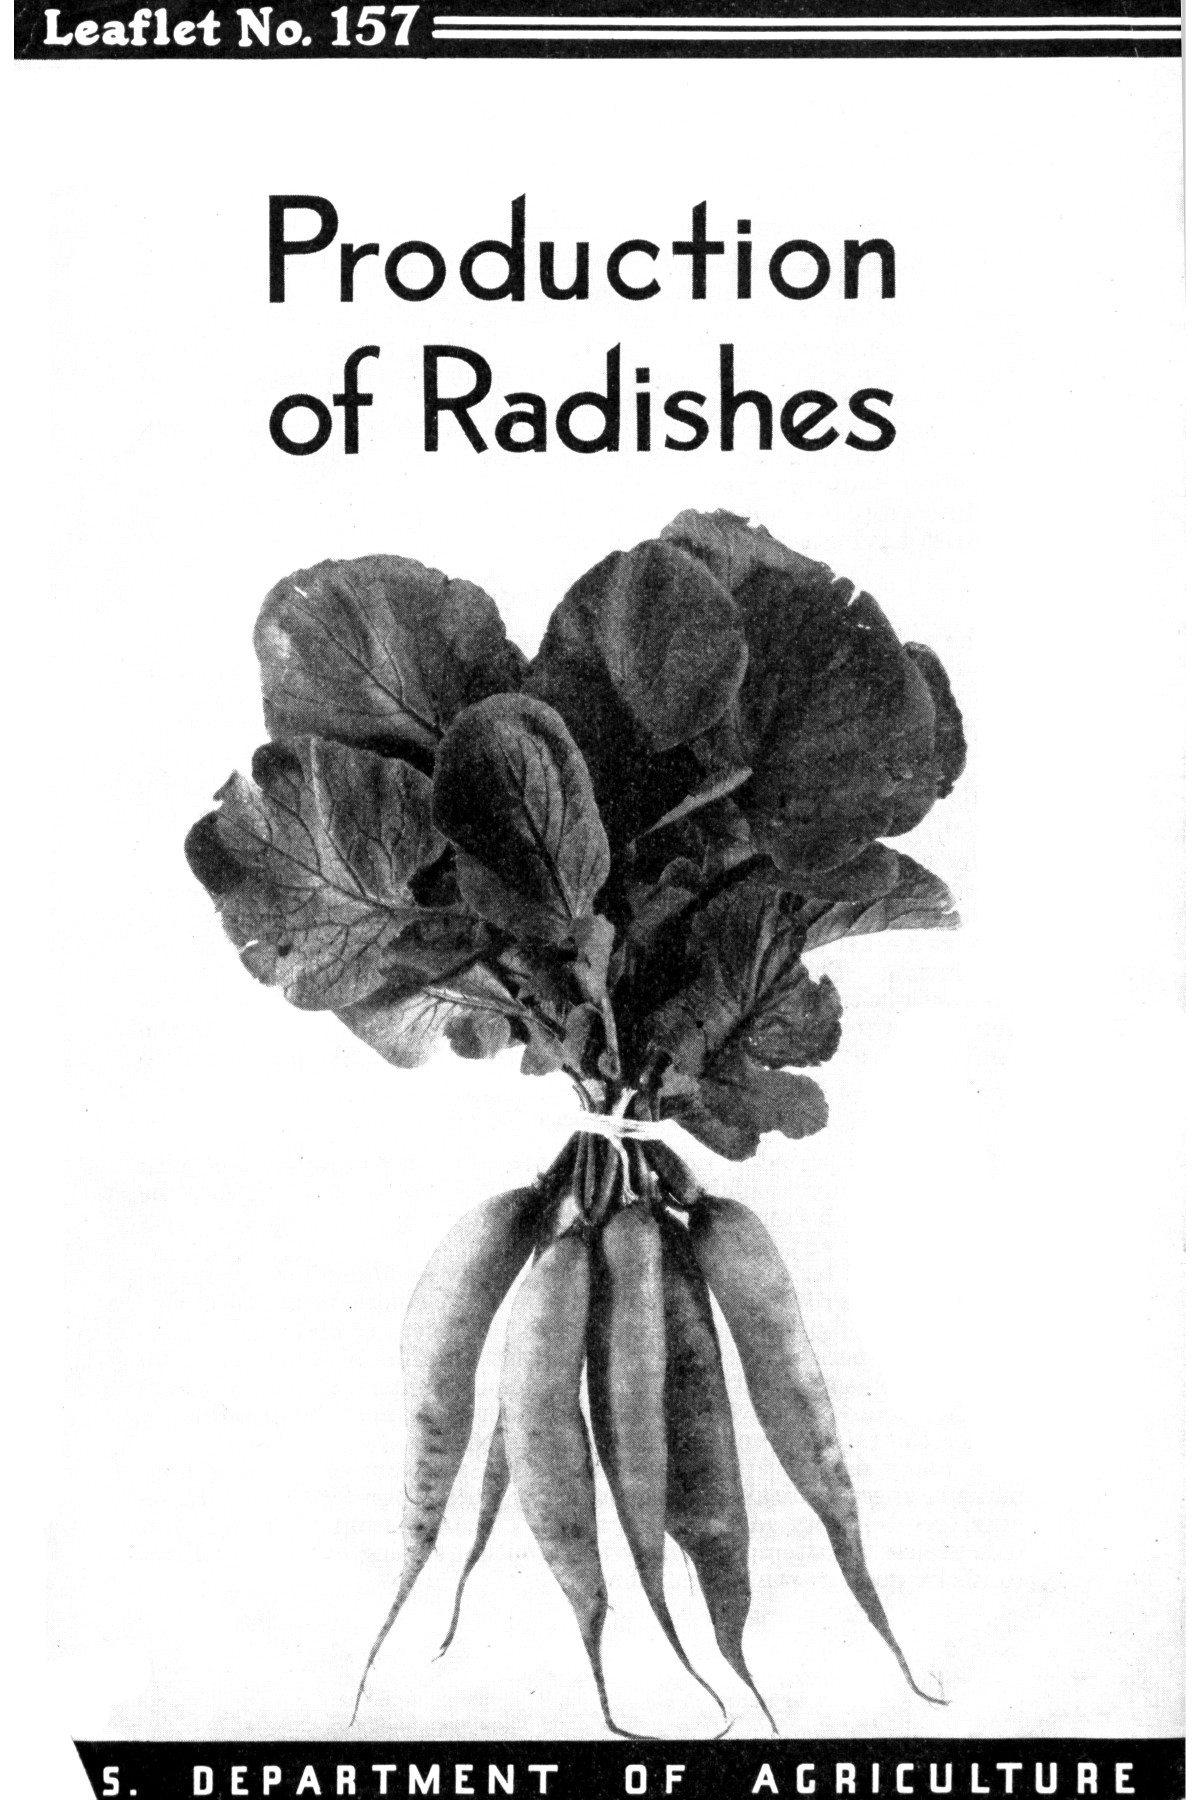 Production of radishes.                                                                                                      1